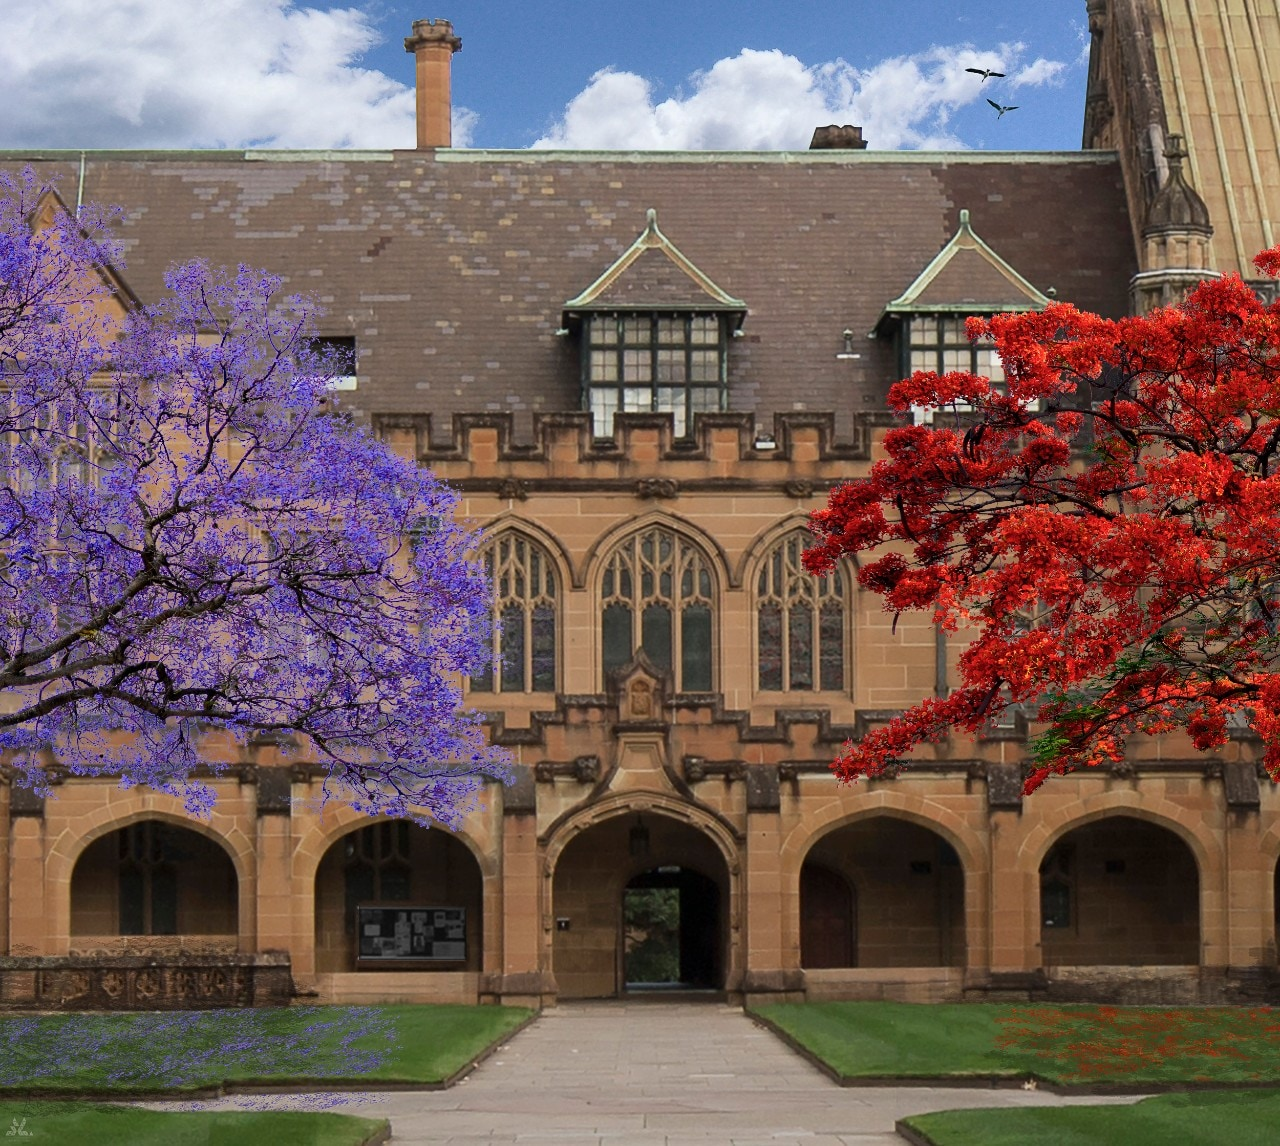 Artist's impression of the jacaranda tree and flame tree in bloom. Credit: The University of Sydney.